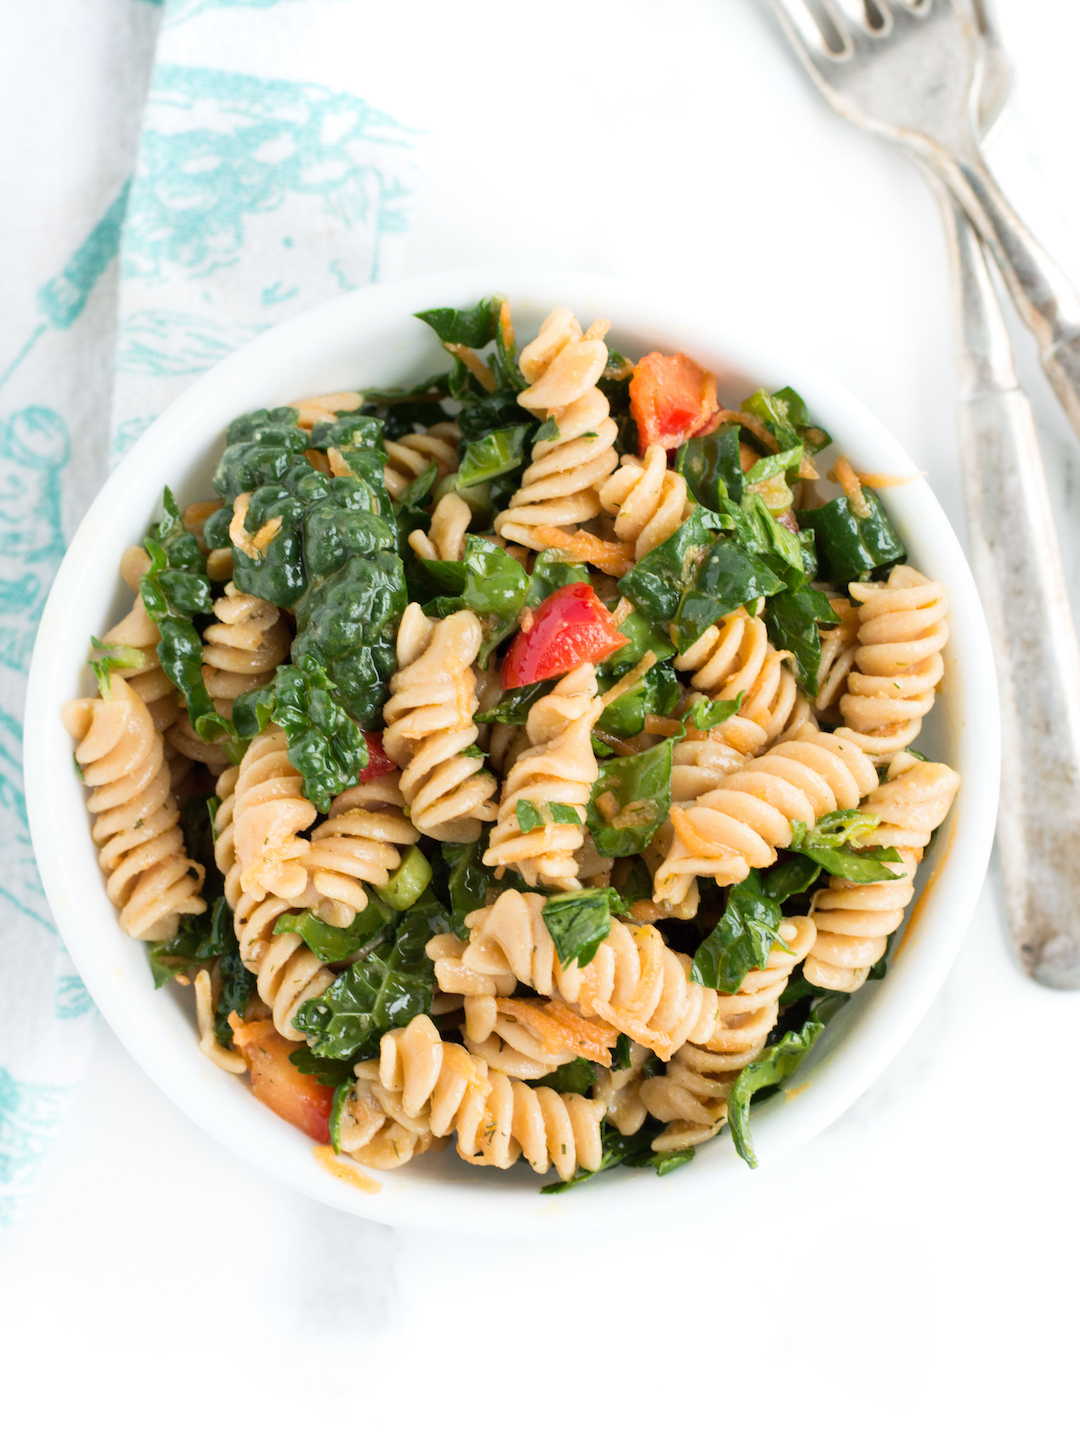 Lemony Vegetable Pasta Salad #ad #sponsored #bentiliapasta